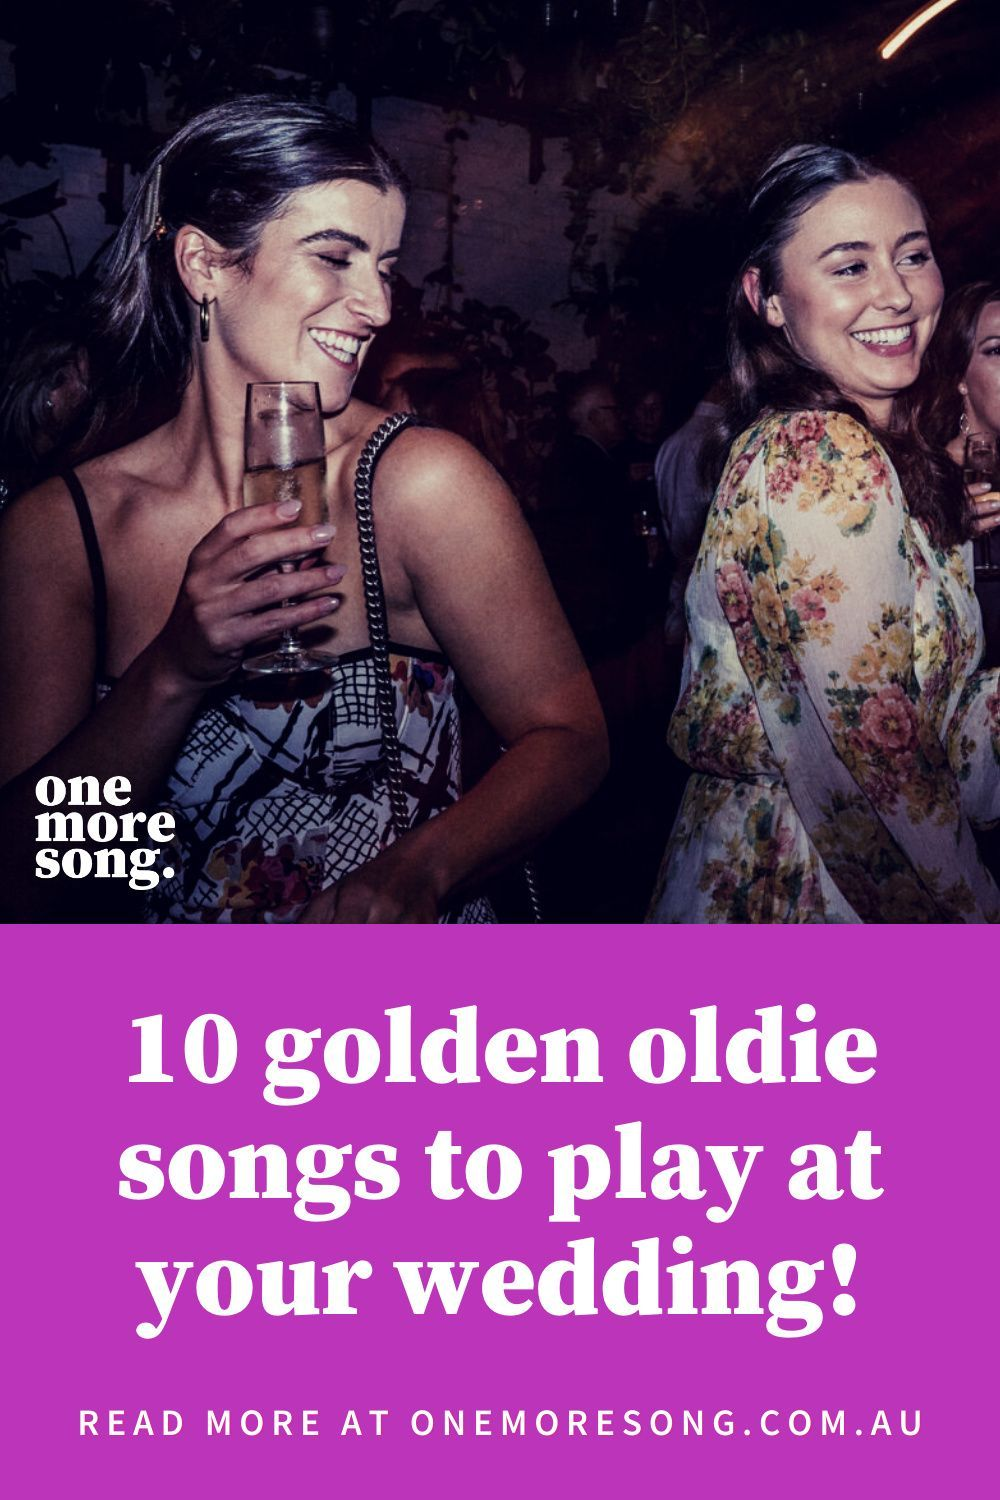 Looking for some inspiration for classic songs to play at your wedding? Look no further - these 10 golden oldies from Melbourne's One More Song DJs will get you started! #weddingsongs #weddingmusic #melbournewedding #weddingplaylist #weddingdj Photo credit: Lulu + Lime.